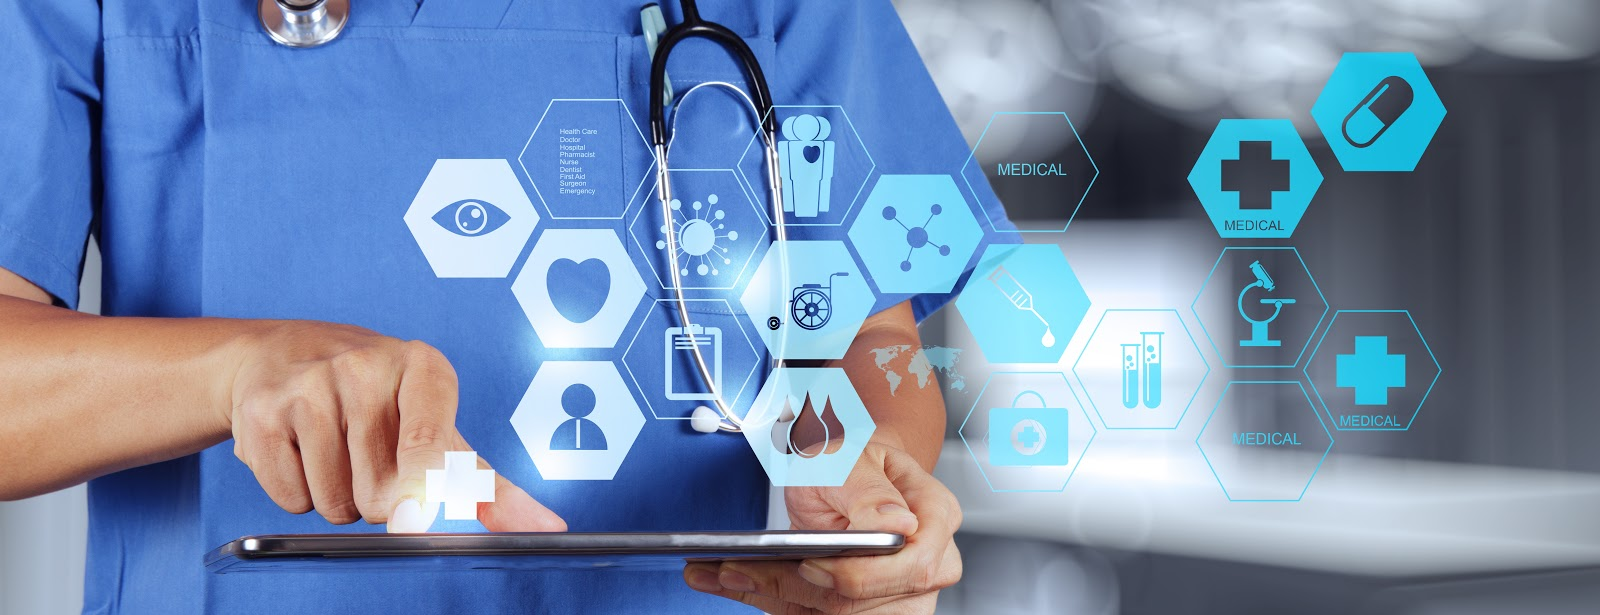 10 Predictions for Healthcare IT in 2019 - Healthcare IT Leaders